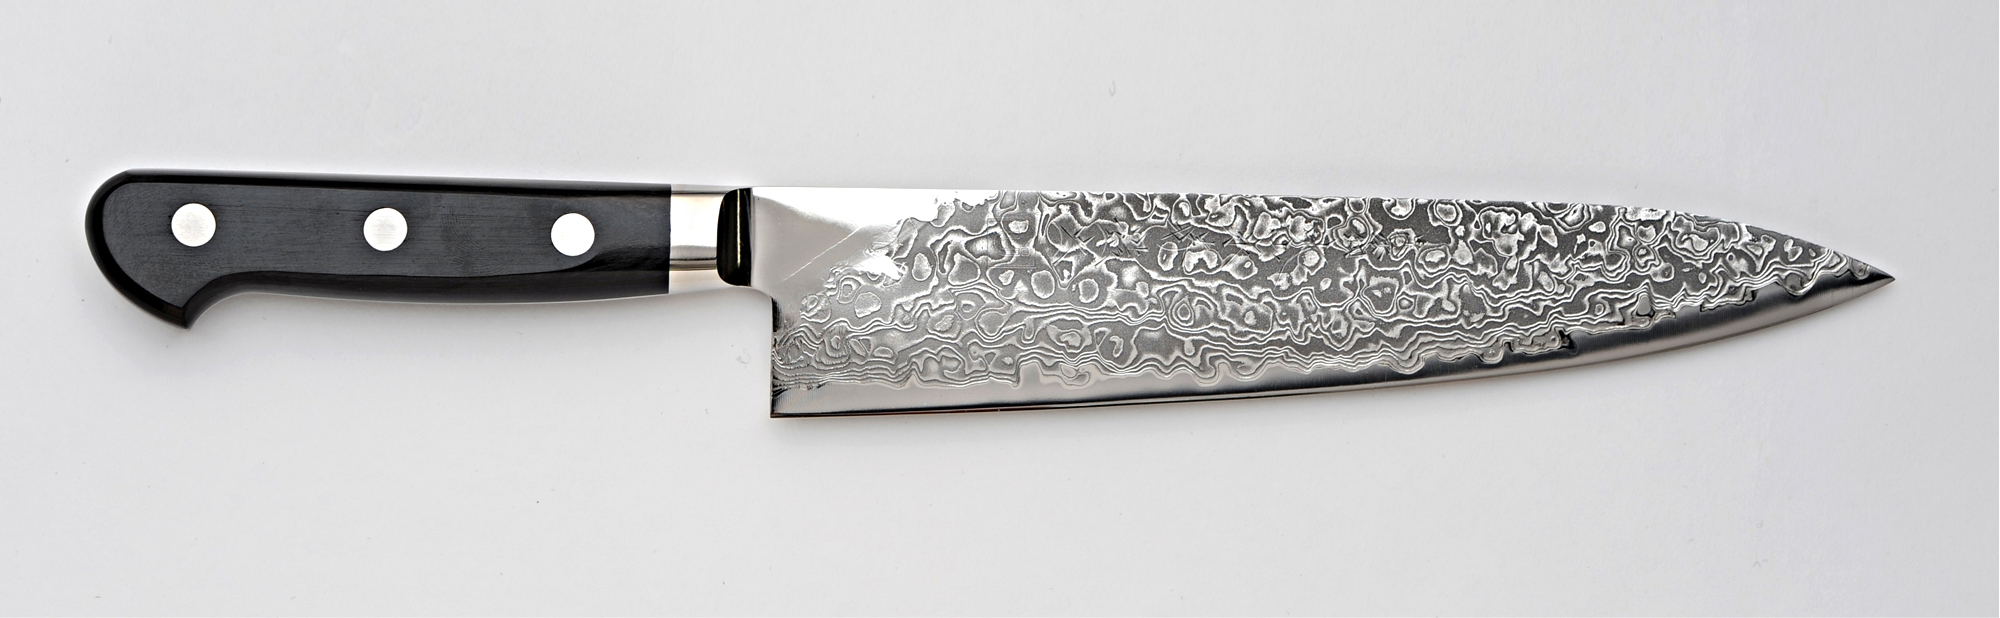 oyama chef s kitchen knife 210mm 8 2in 171 unique japan r2 damascus chef s kitchen knife 210mm 8 2in 171 unique 479